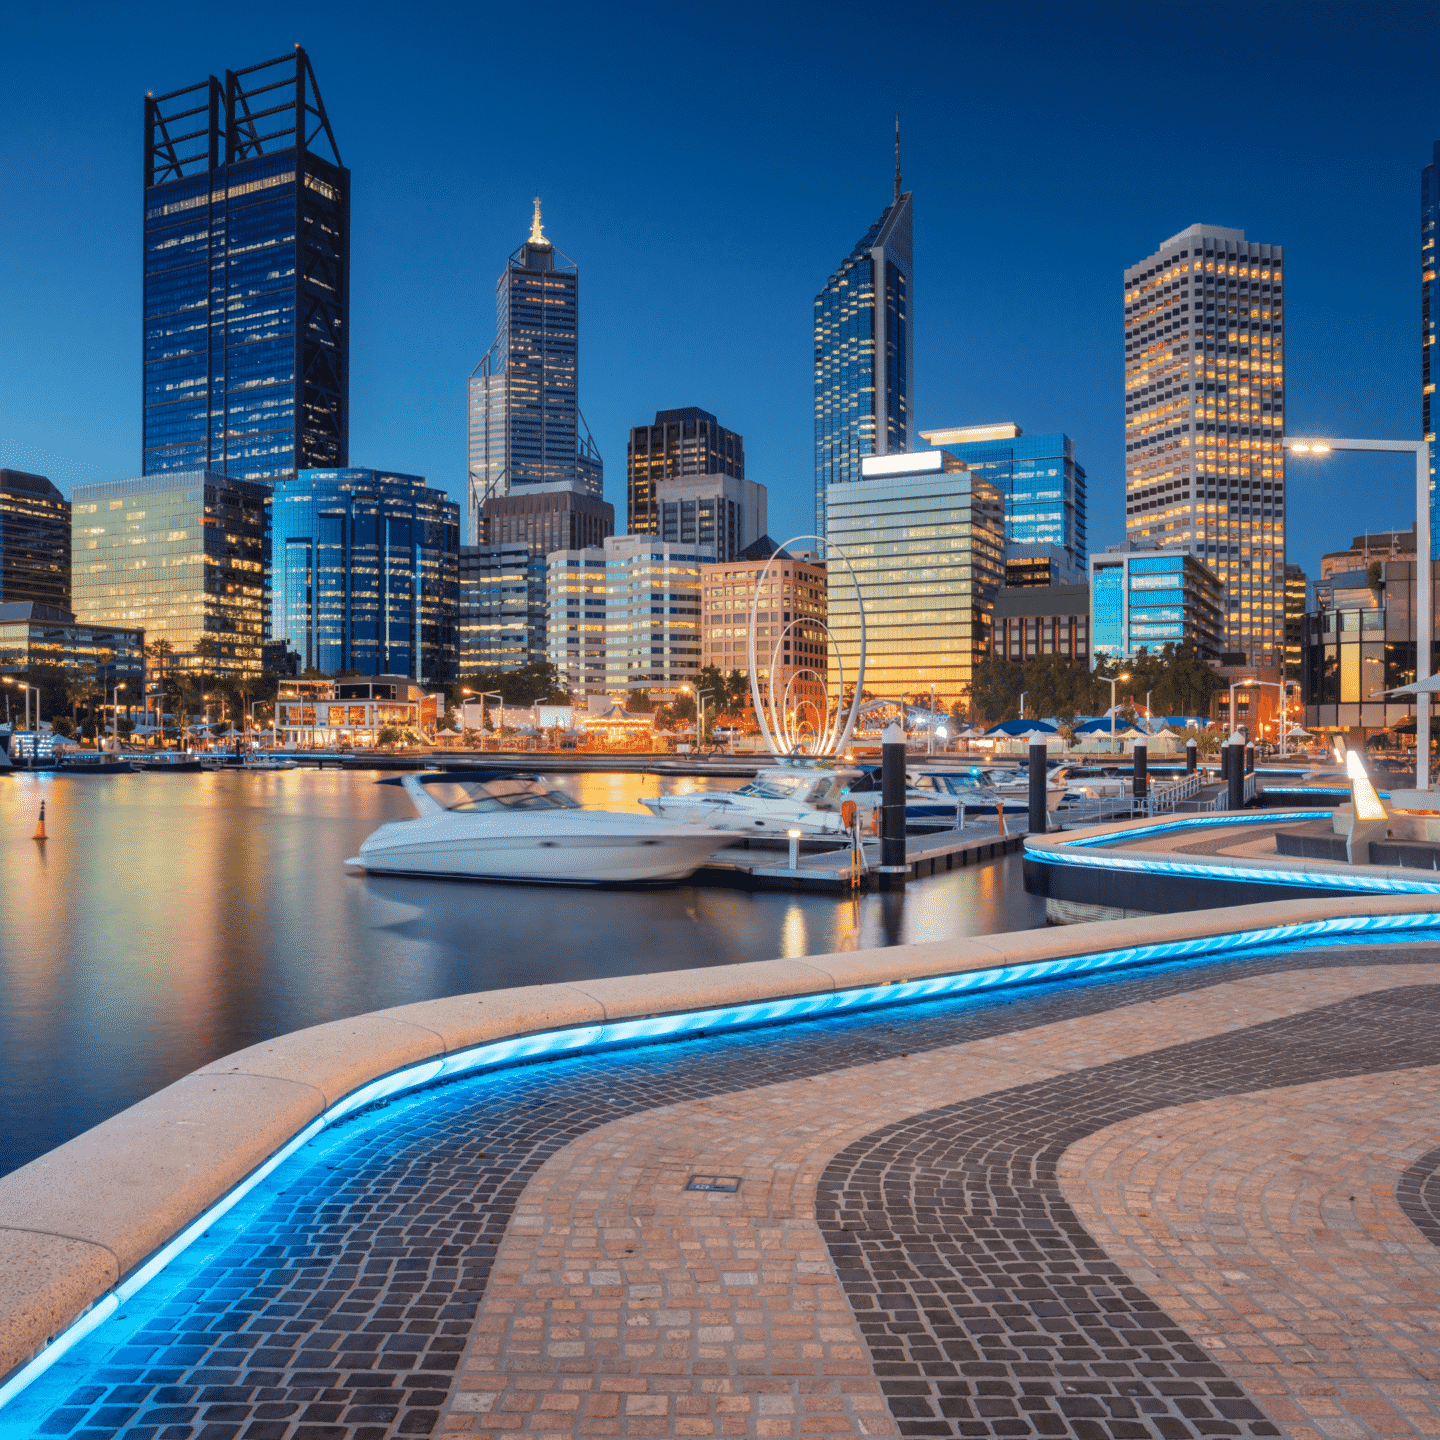 25 places to visit before turning 25 | Perth, Australia